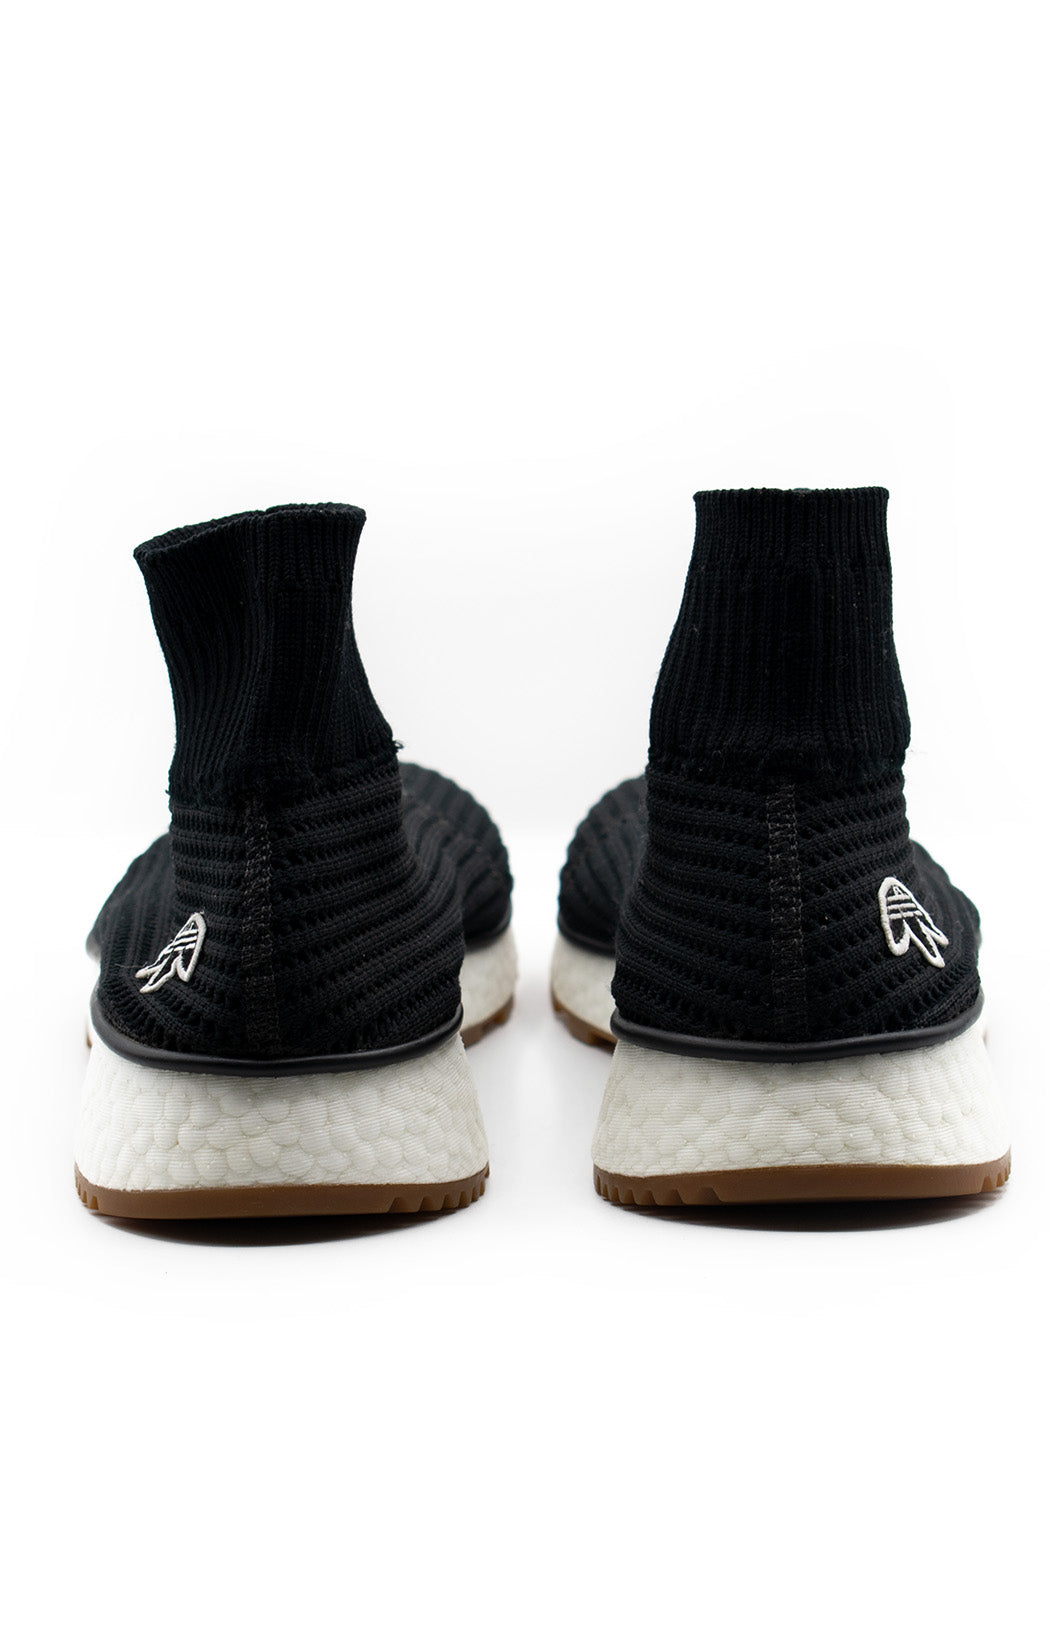 Back view of ALEXANDER WANG for ADIDAS Tennis shoe